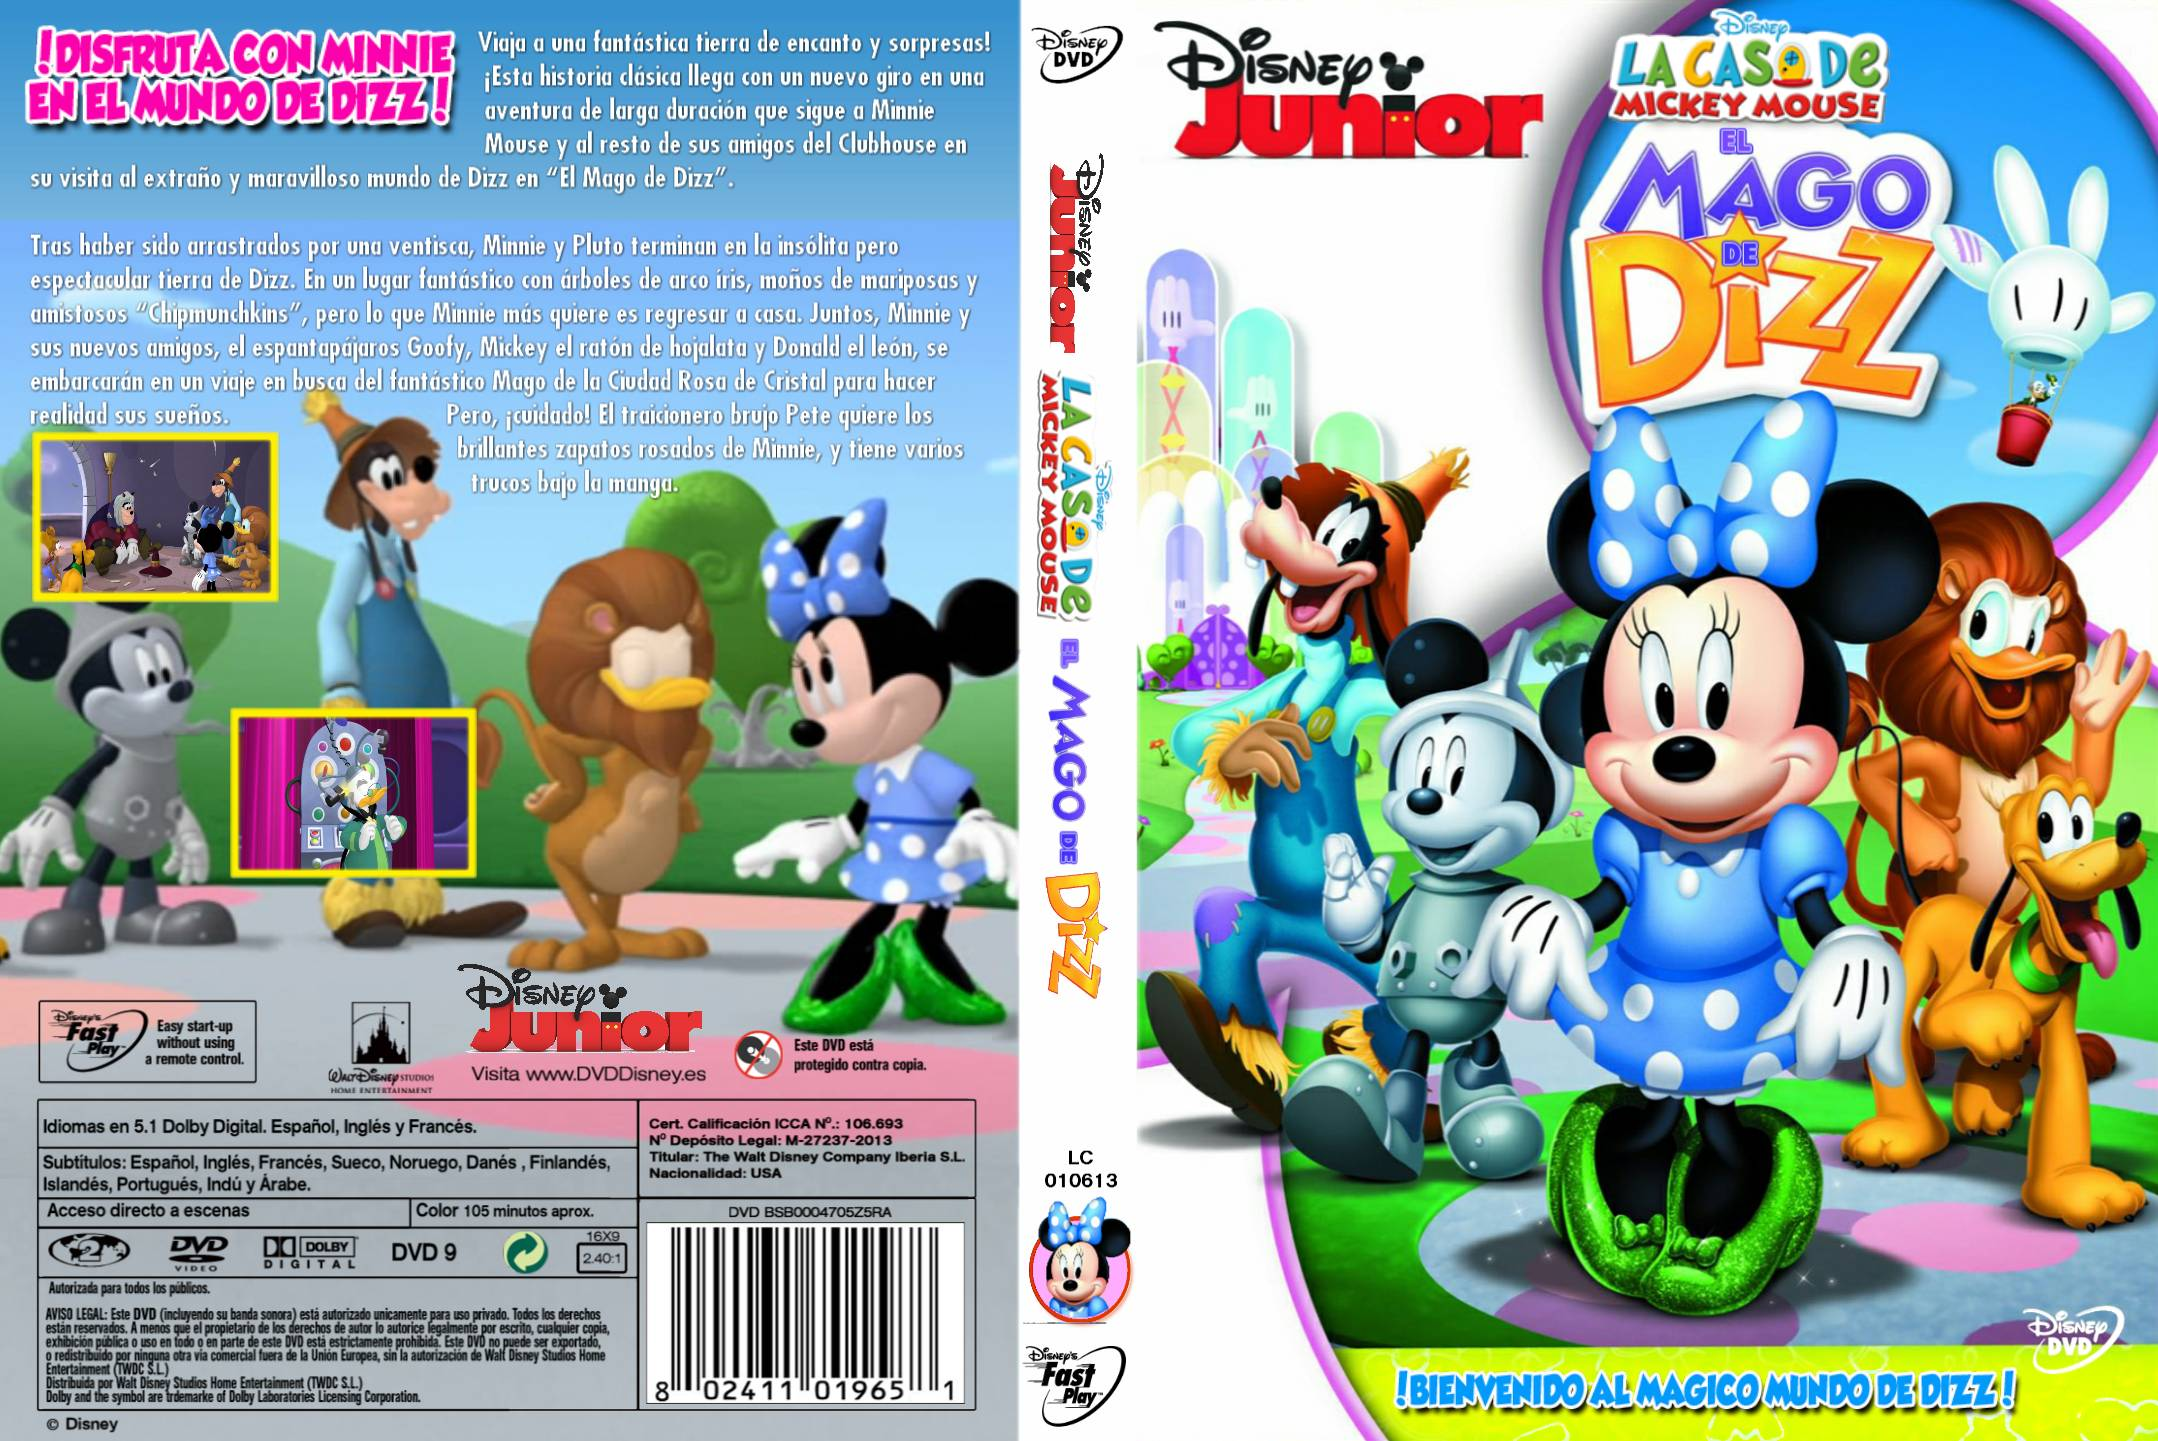 Mickey mouse clubhouse the wizard of dizz dvd amazoncouk - La casa de mickey mouse minnie cienta ...